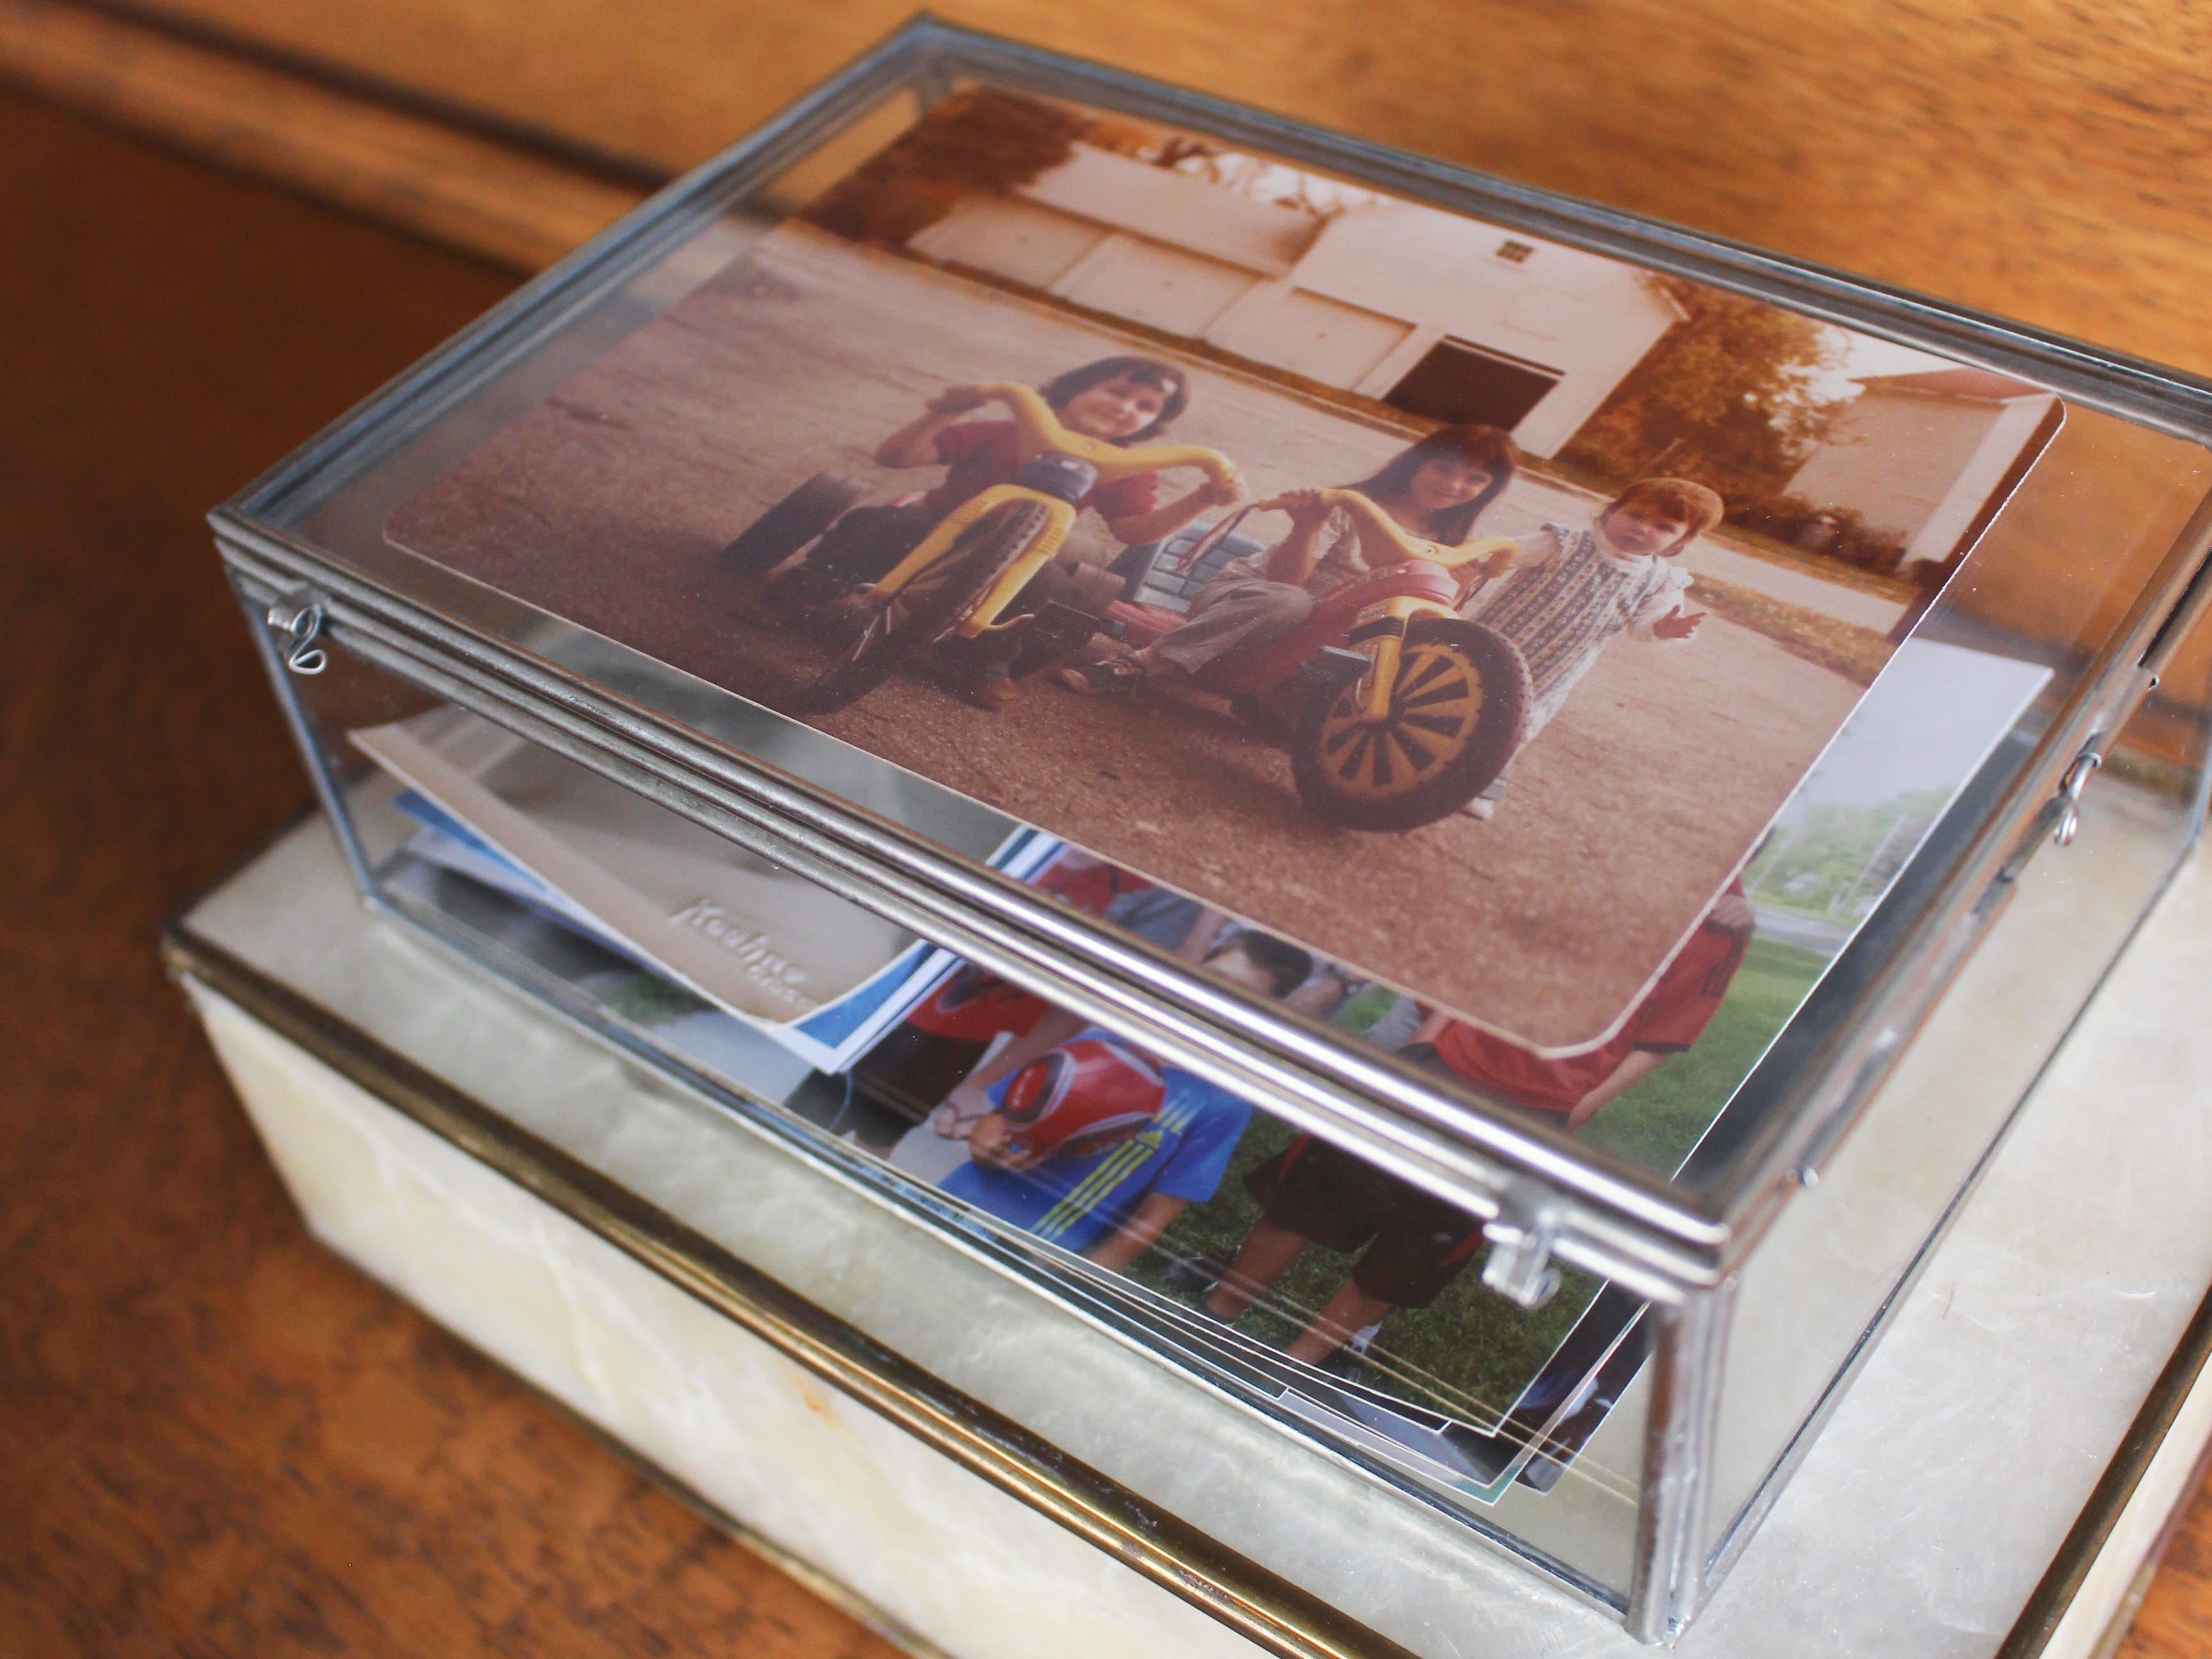 Special containers offer a way to store photos but make them accessible for viewing.